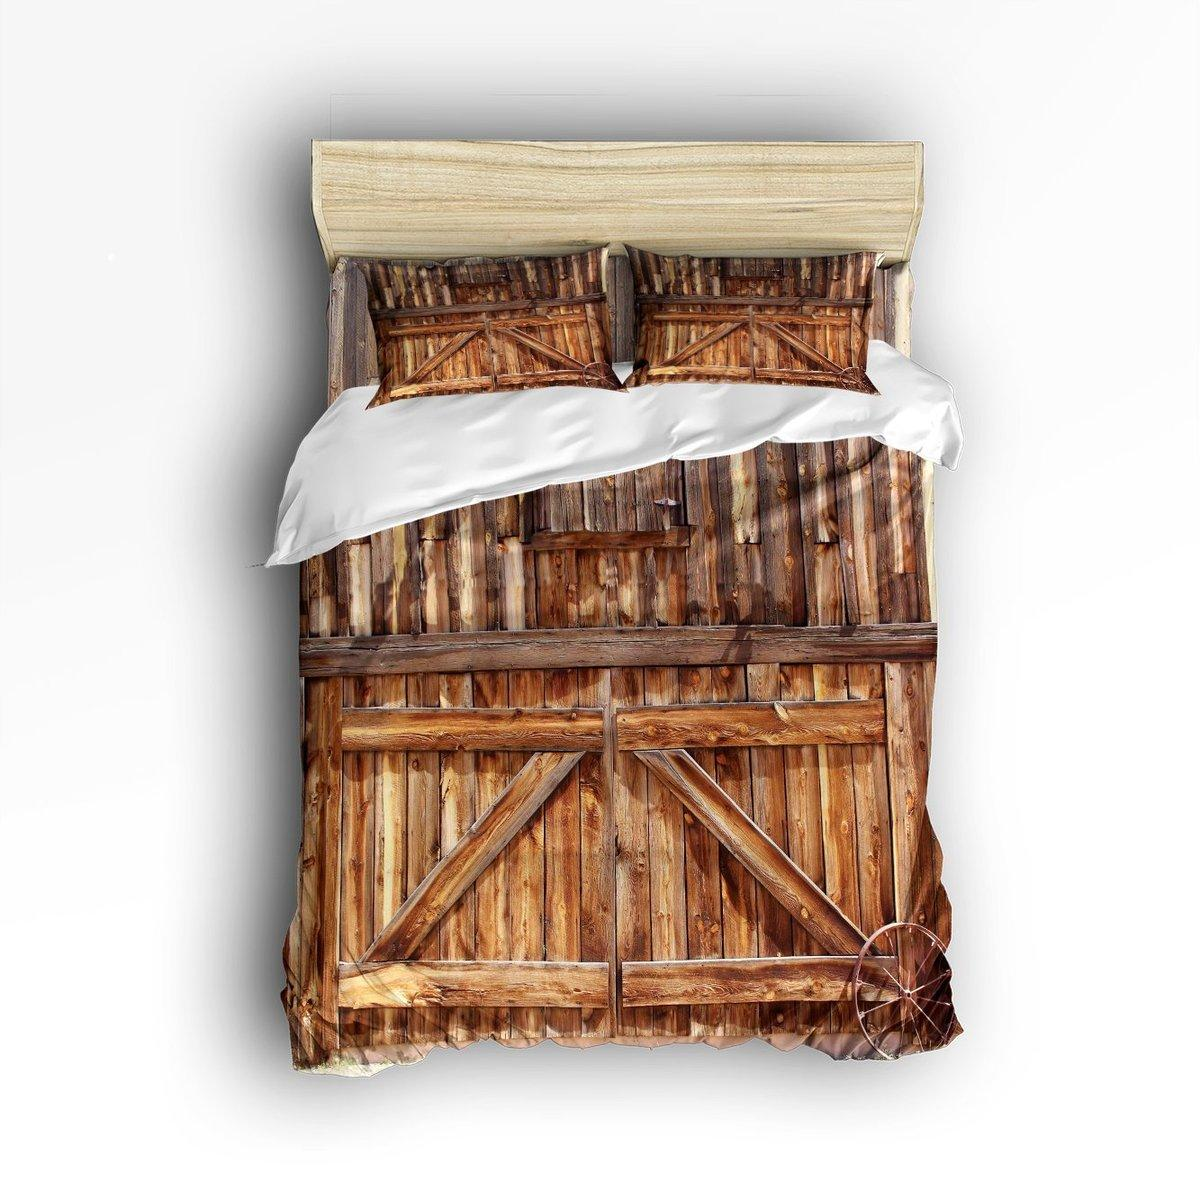 Charmhome Custom Rustic Wooden Door Printed 3d Bedding Sets Duvet Cover Bed  Sheet Pillowcases For Adult Kids Queen Comforter Cover Cheap Queen Bedding  Sets ...